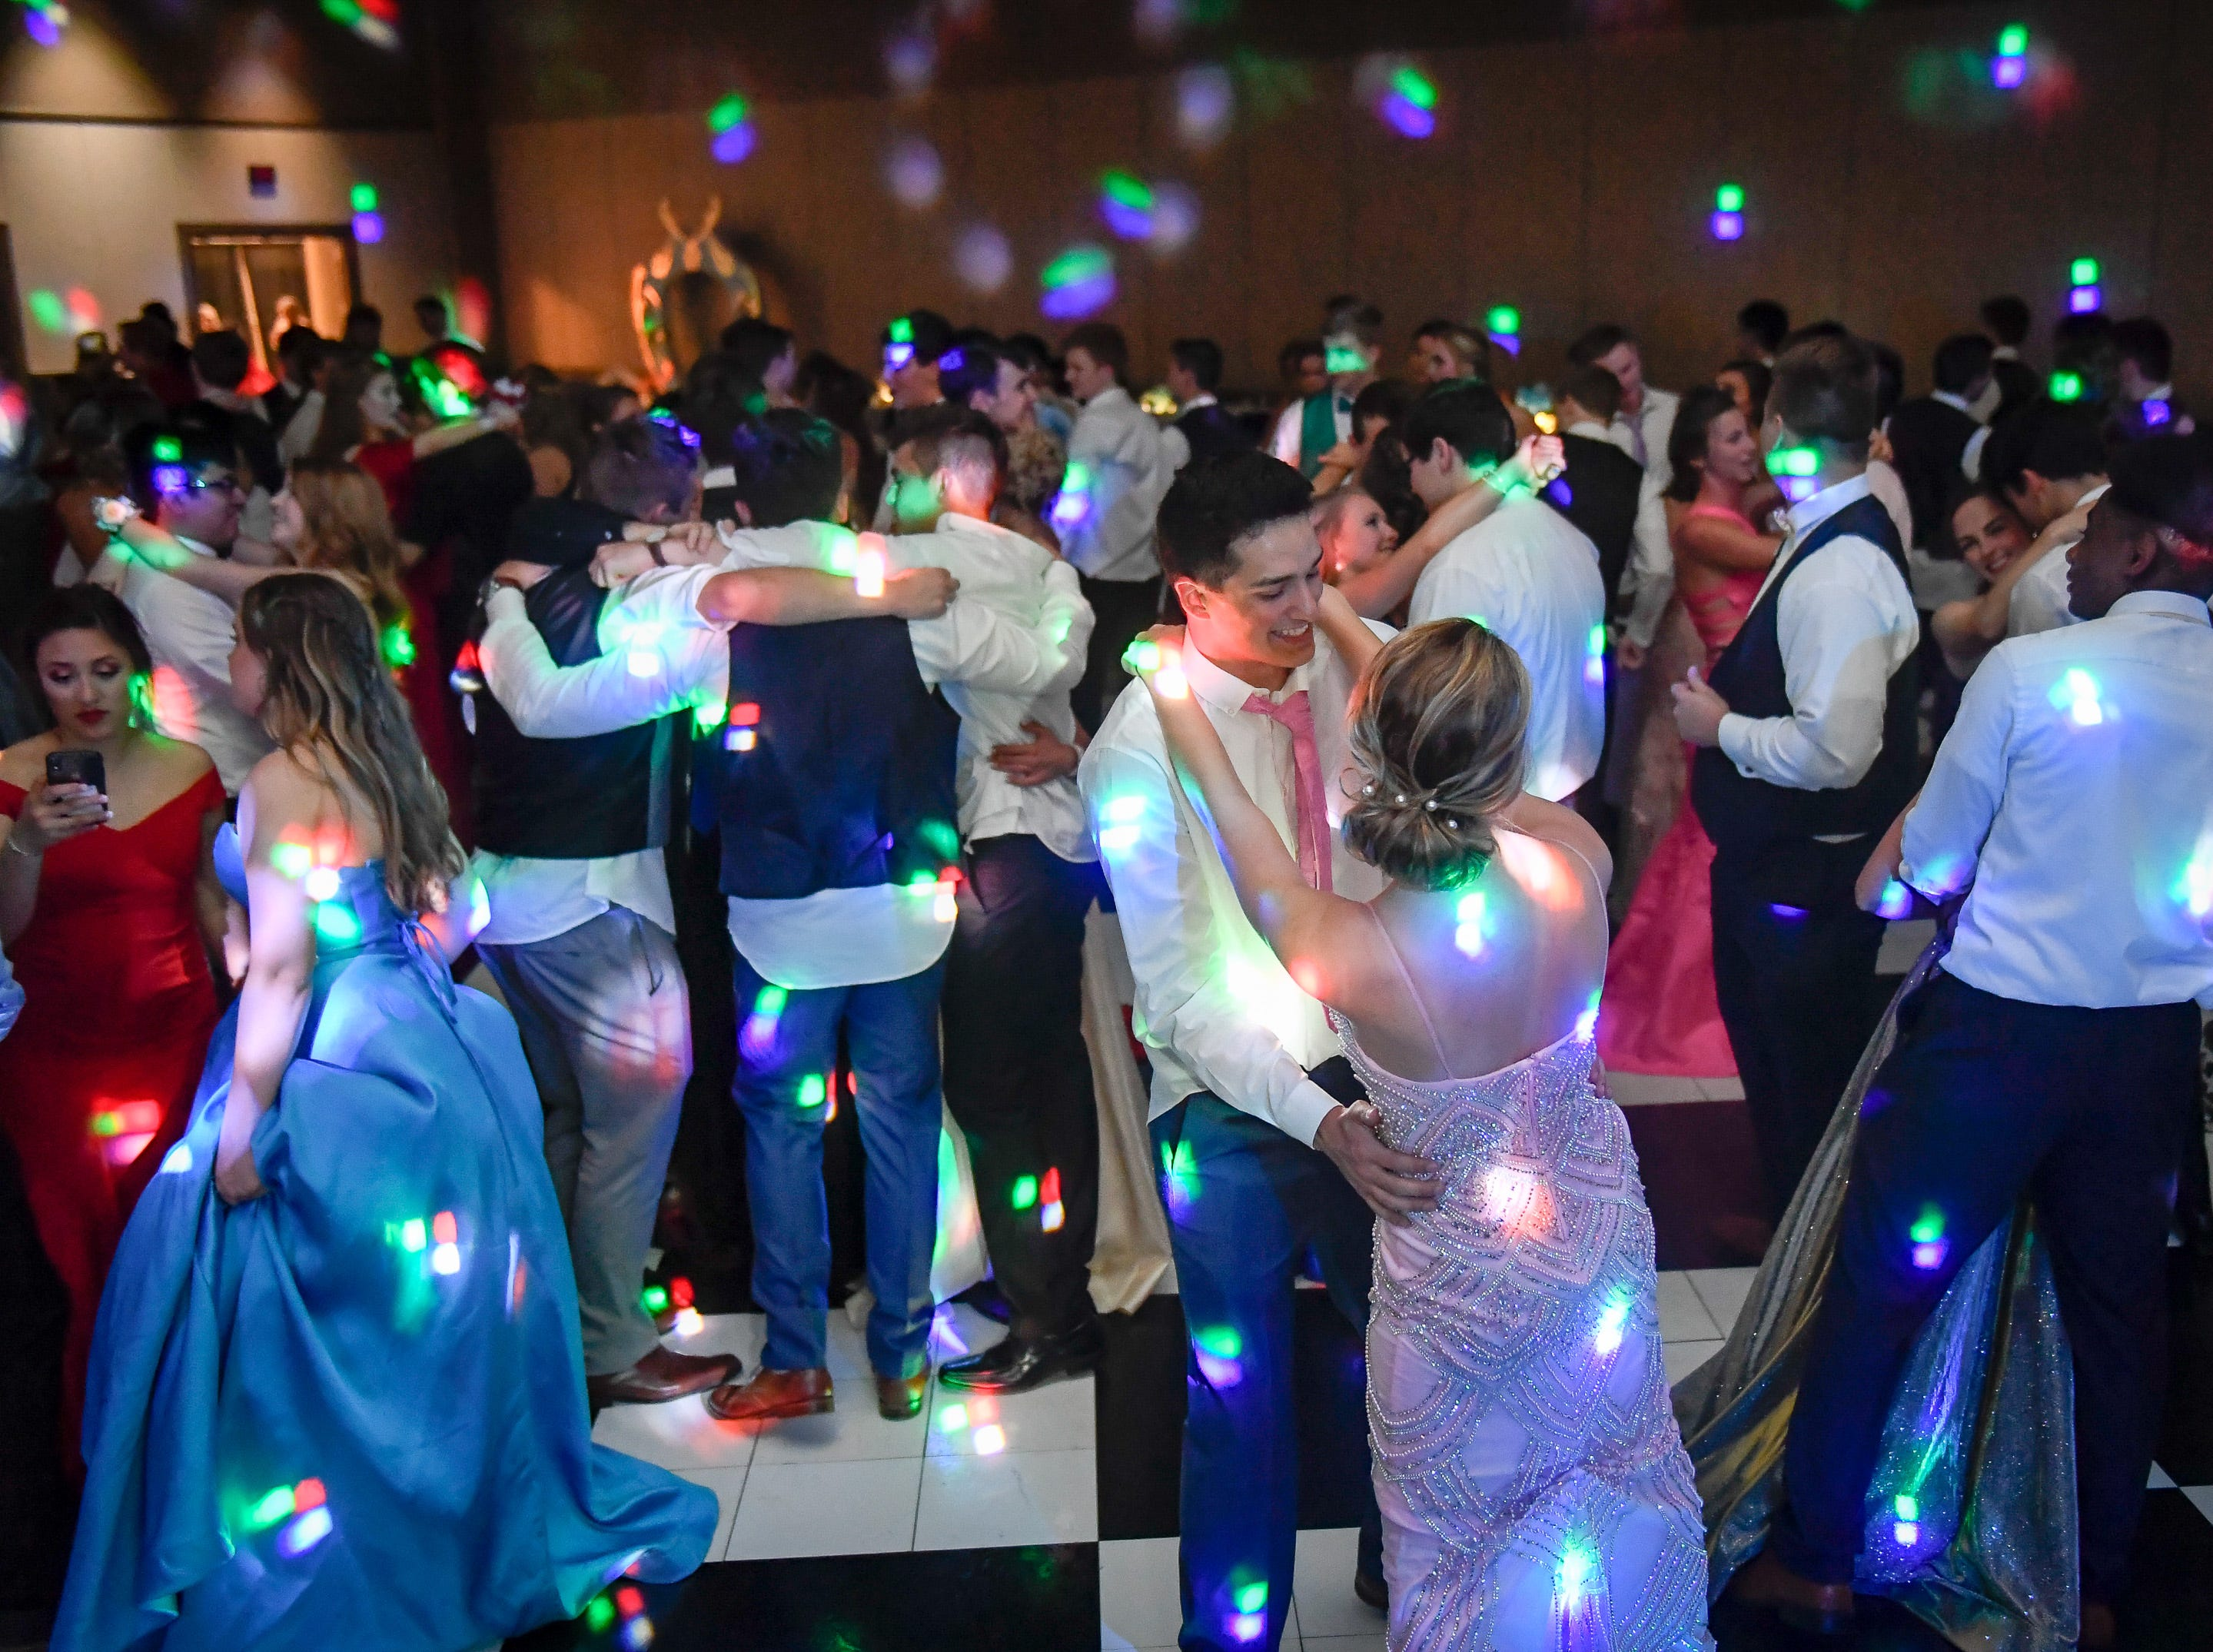 Dancing at the Memorial High School prom, held at the Old National Events Center Plaza Saturday, April 27, 2019.